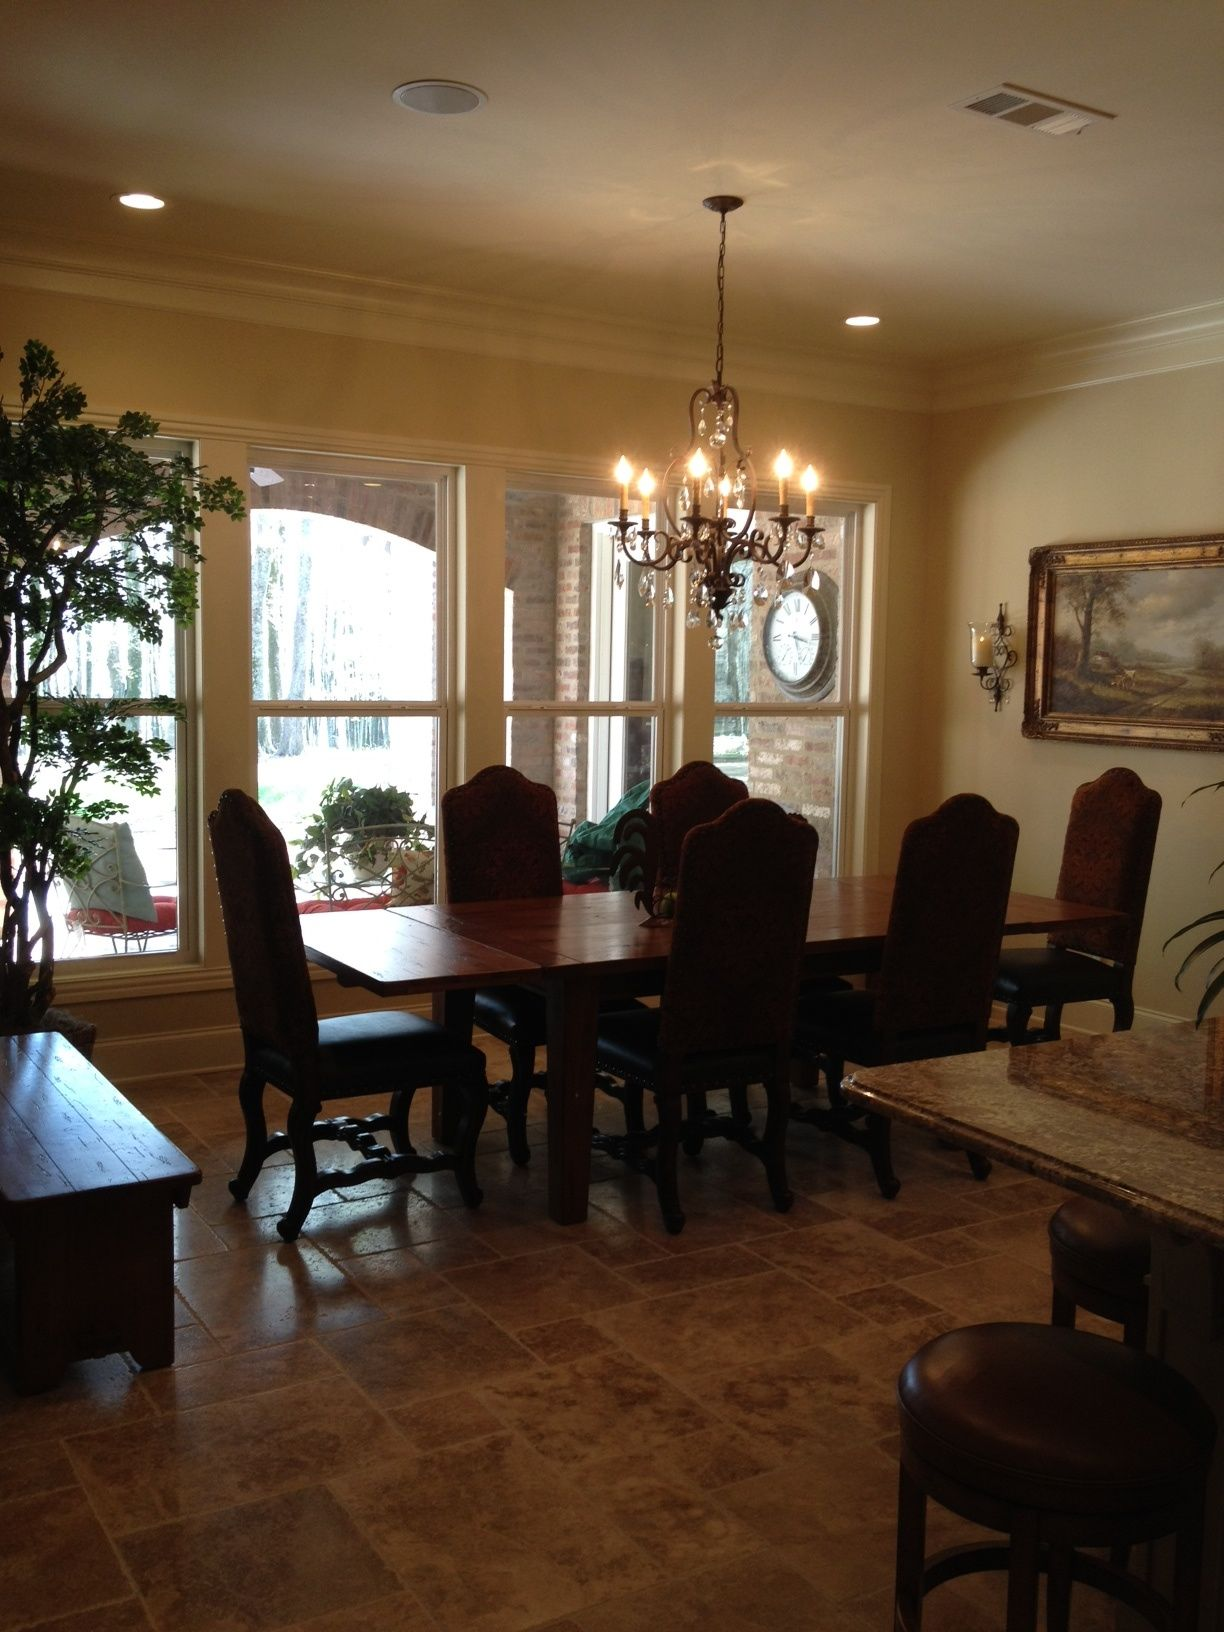 Madden Home Design The Plantation Dining Area The